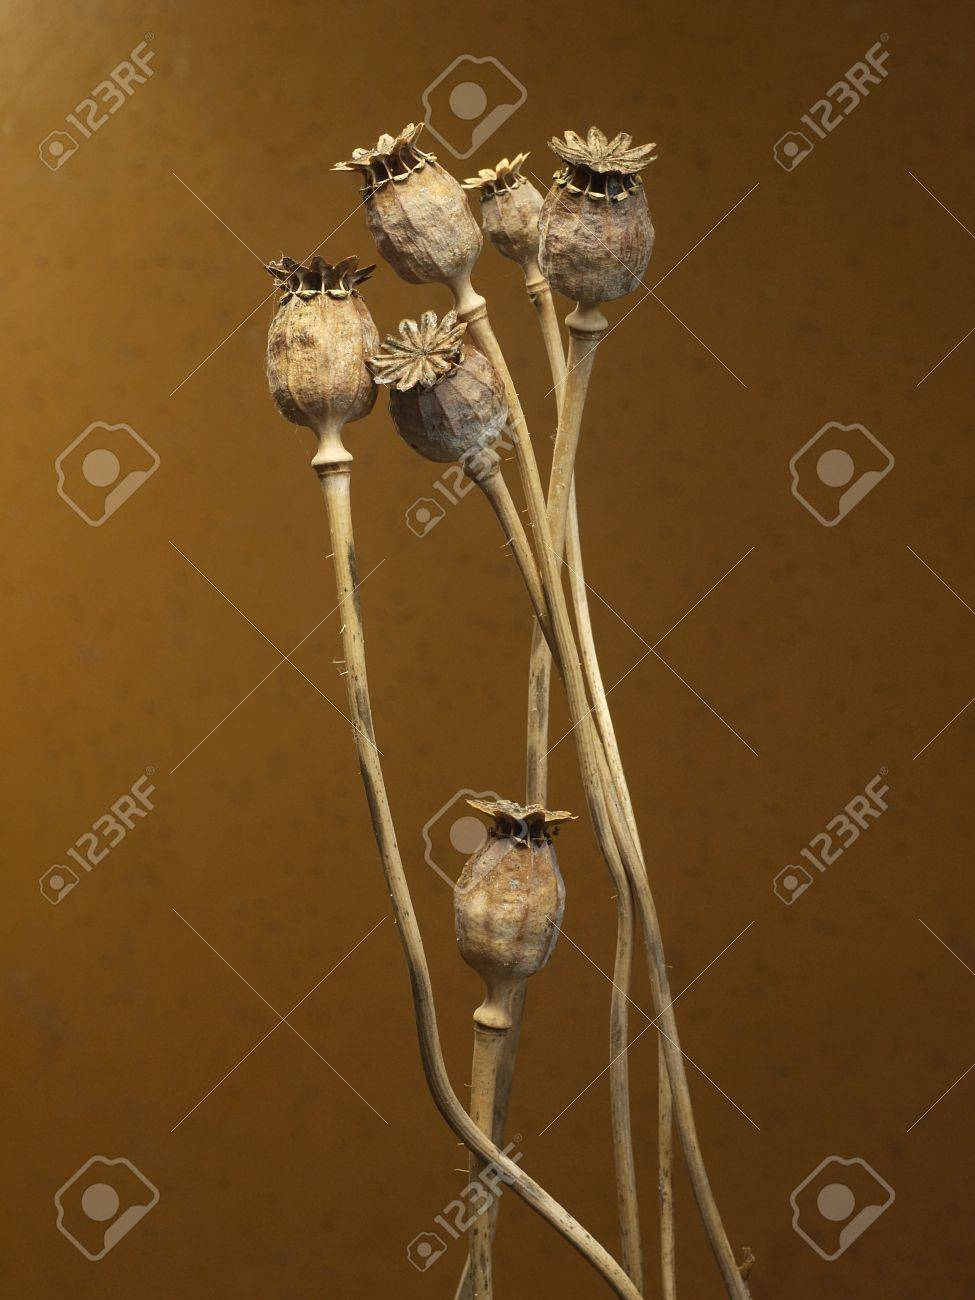 Some Dry Poppy Flower Heads On A Brown Background Stock Photo